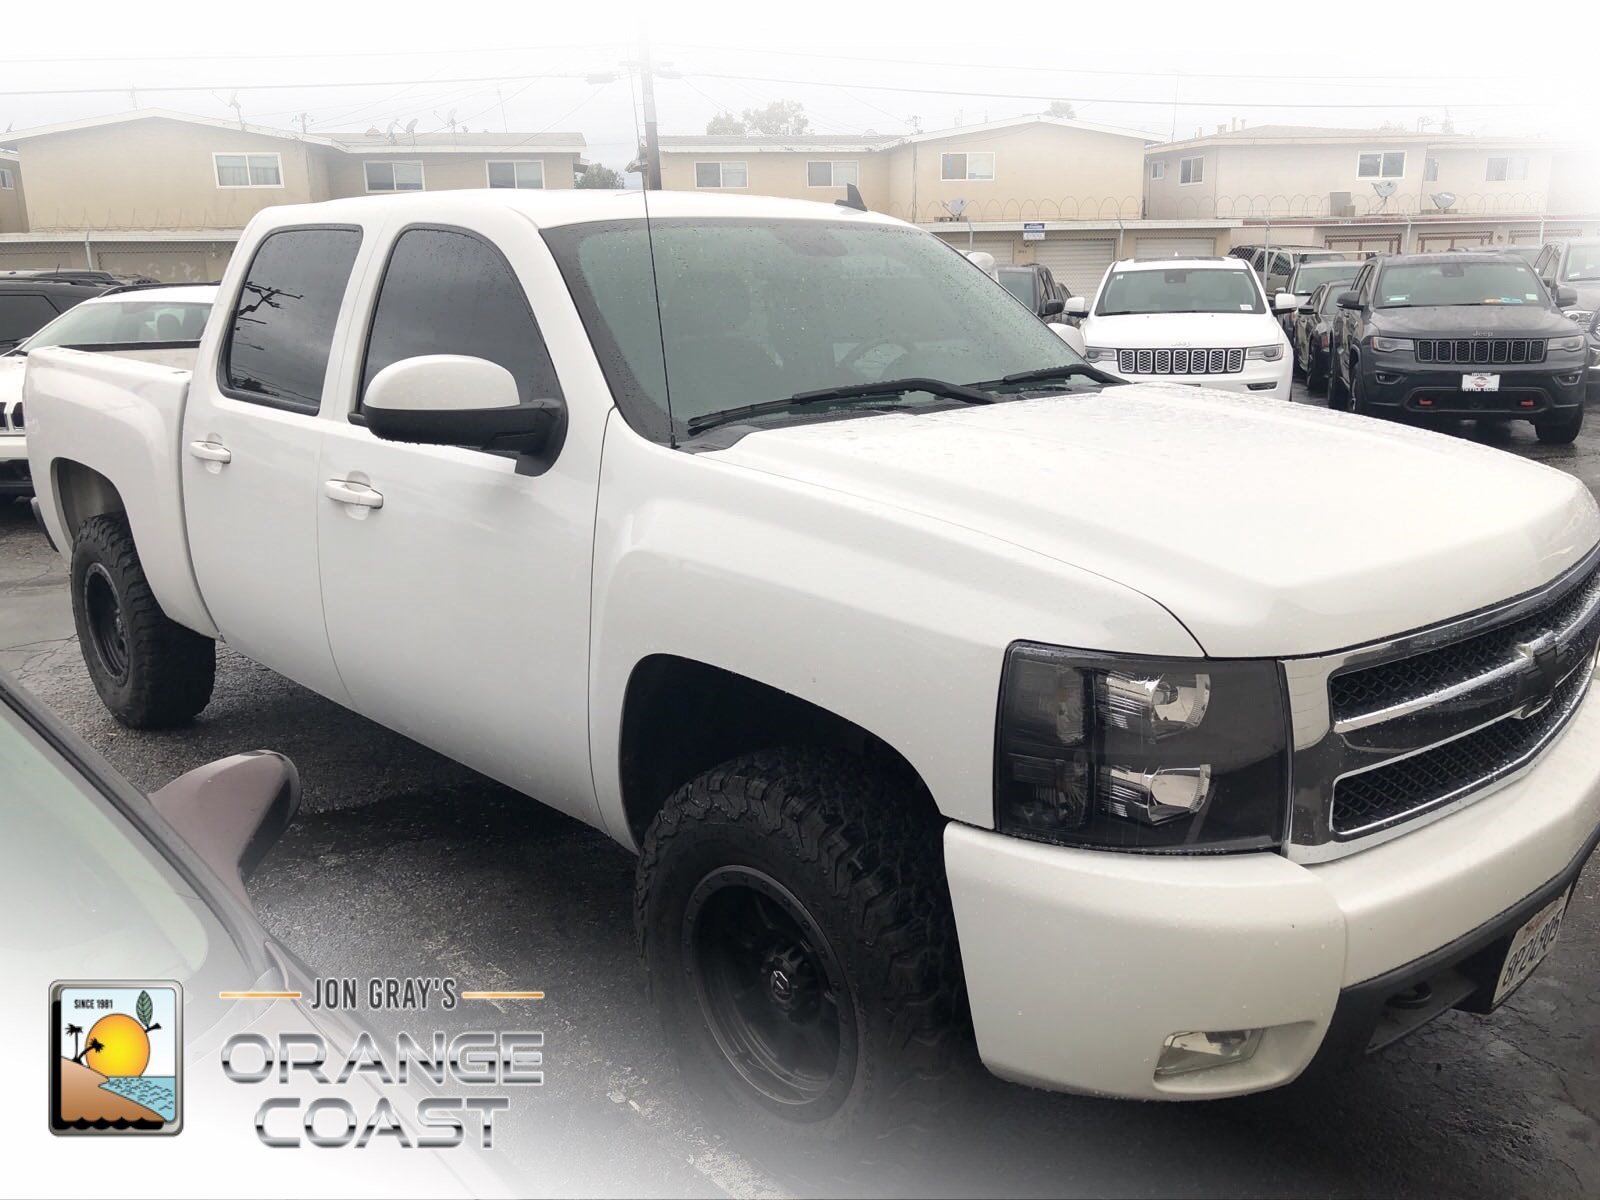 Pre Owned 2008 Chevrolet Silverado 1500 LTZ Crew Cab Pickup in Costa